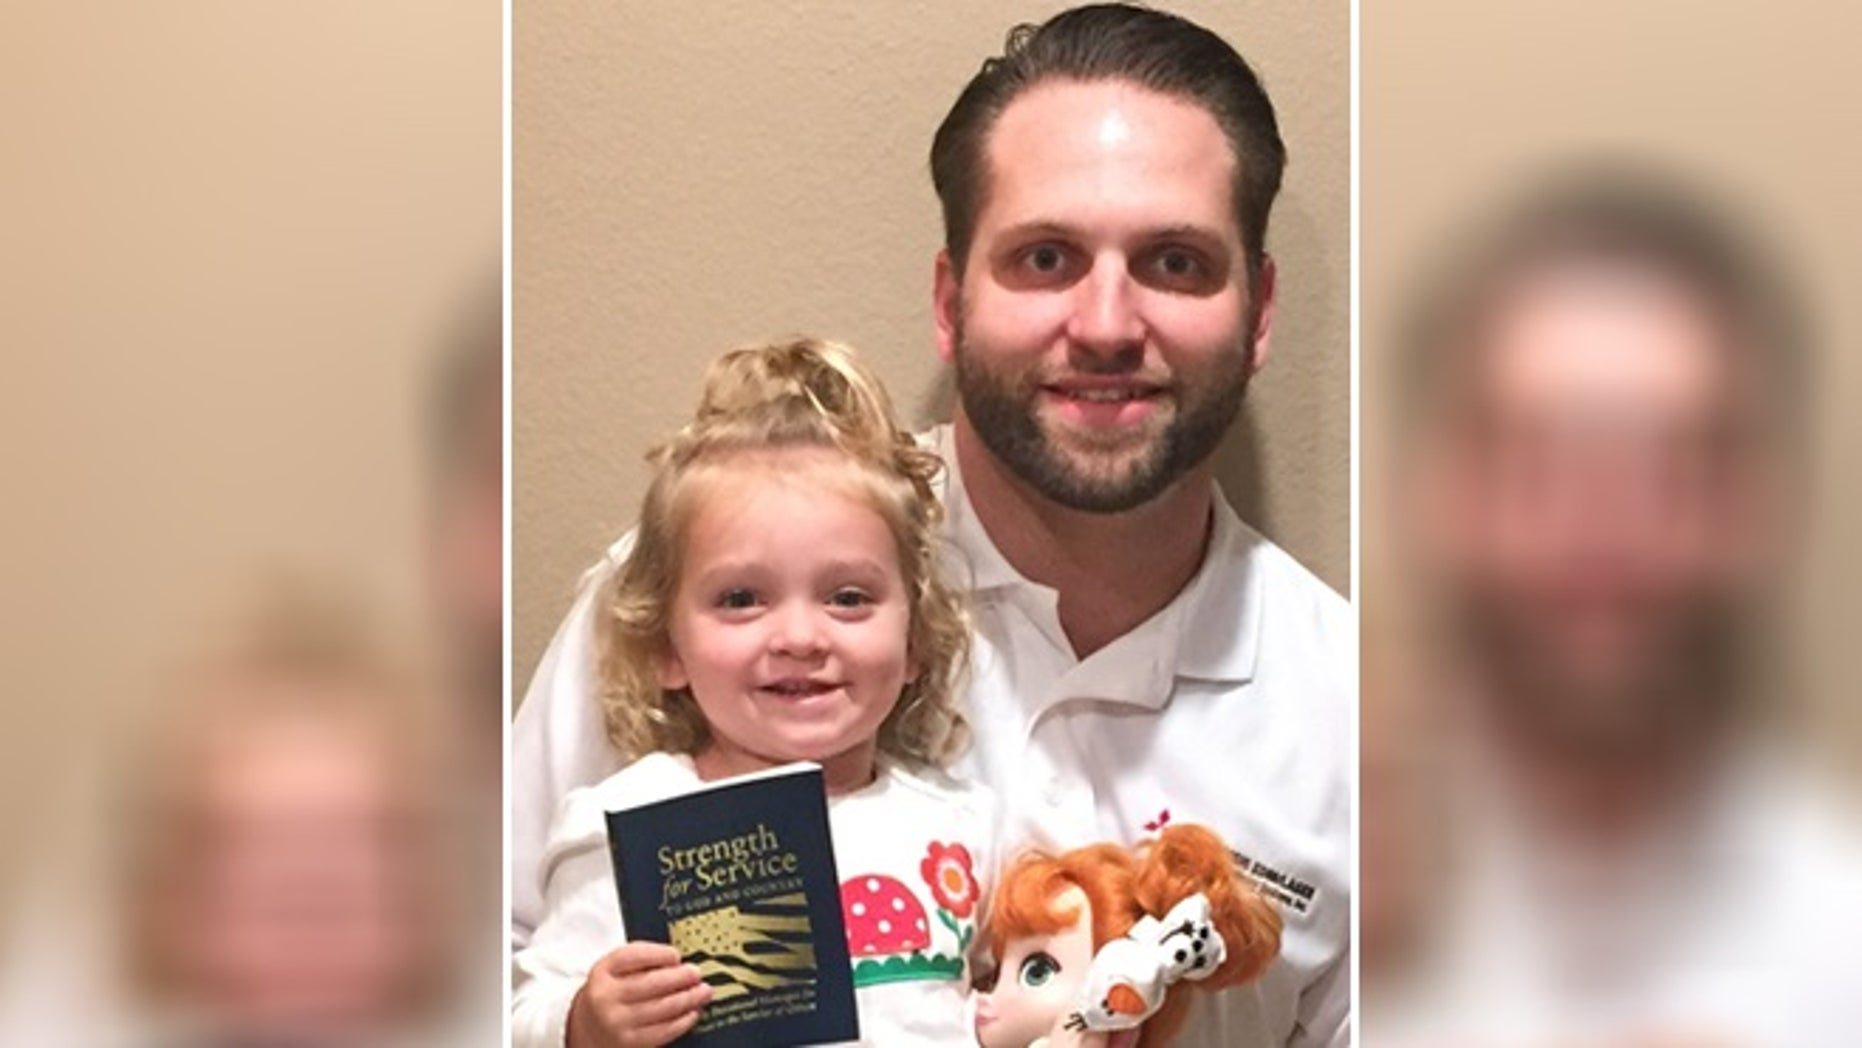 """Evan Hunsberger, 29, seen here with his daughter Caydence, has worked tirelessly since the age of 13 to reprint and distribute """"Strength or Service for God and Country."""" (Courtesy of Evan Hunsberger)"""